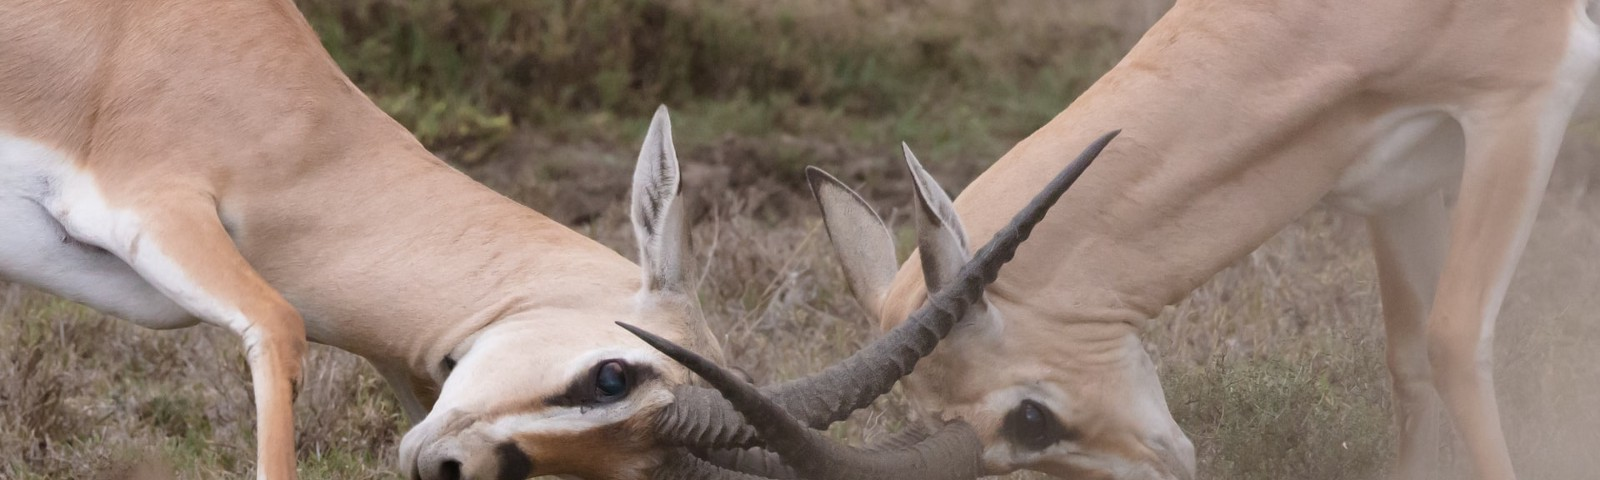 Two antelope butting heads with interlocked antlers.